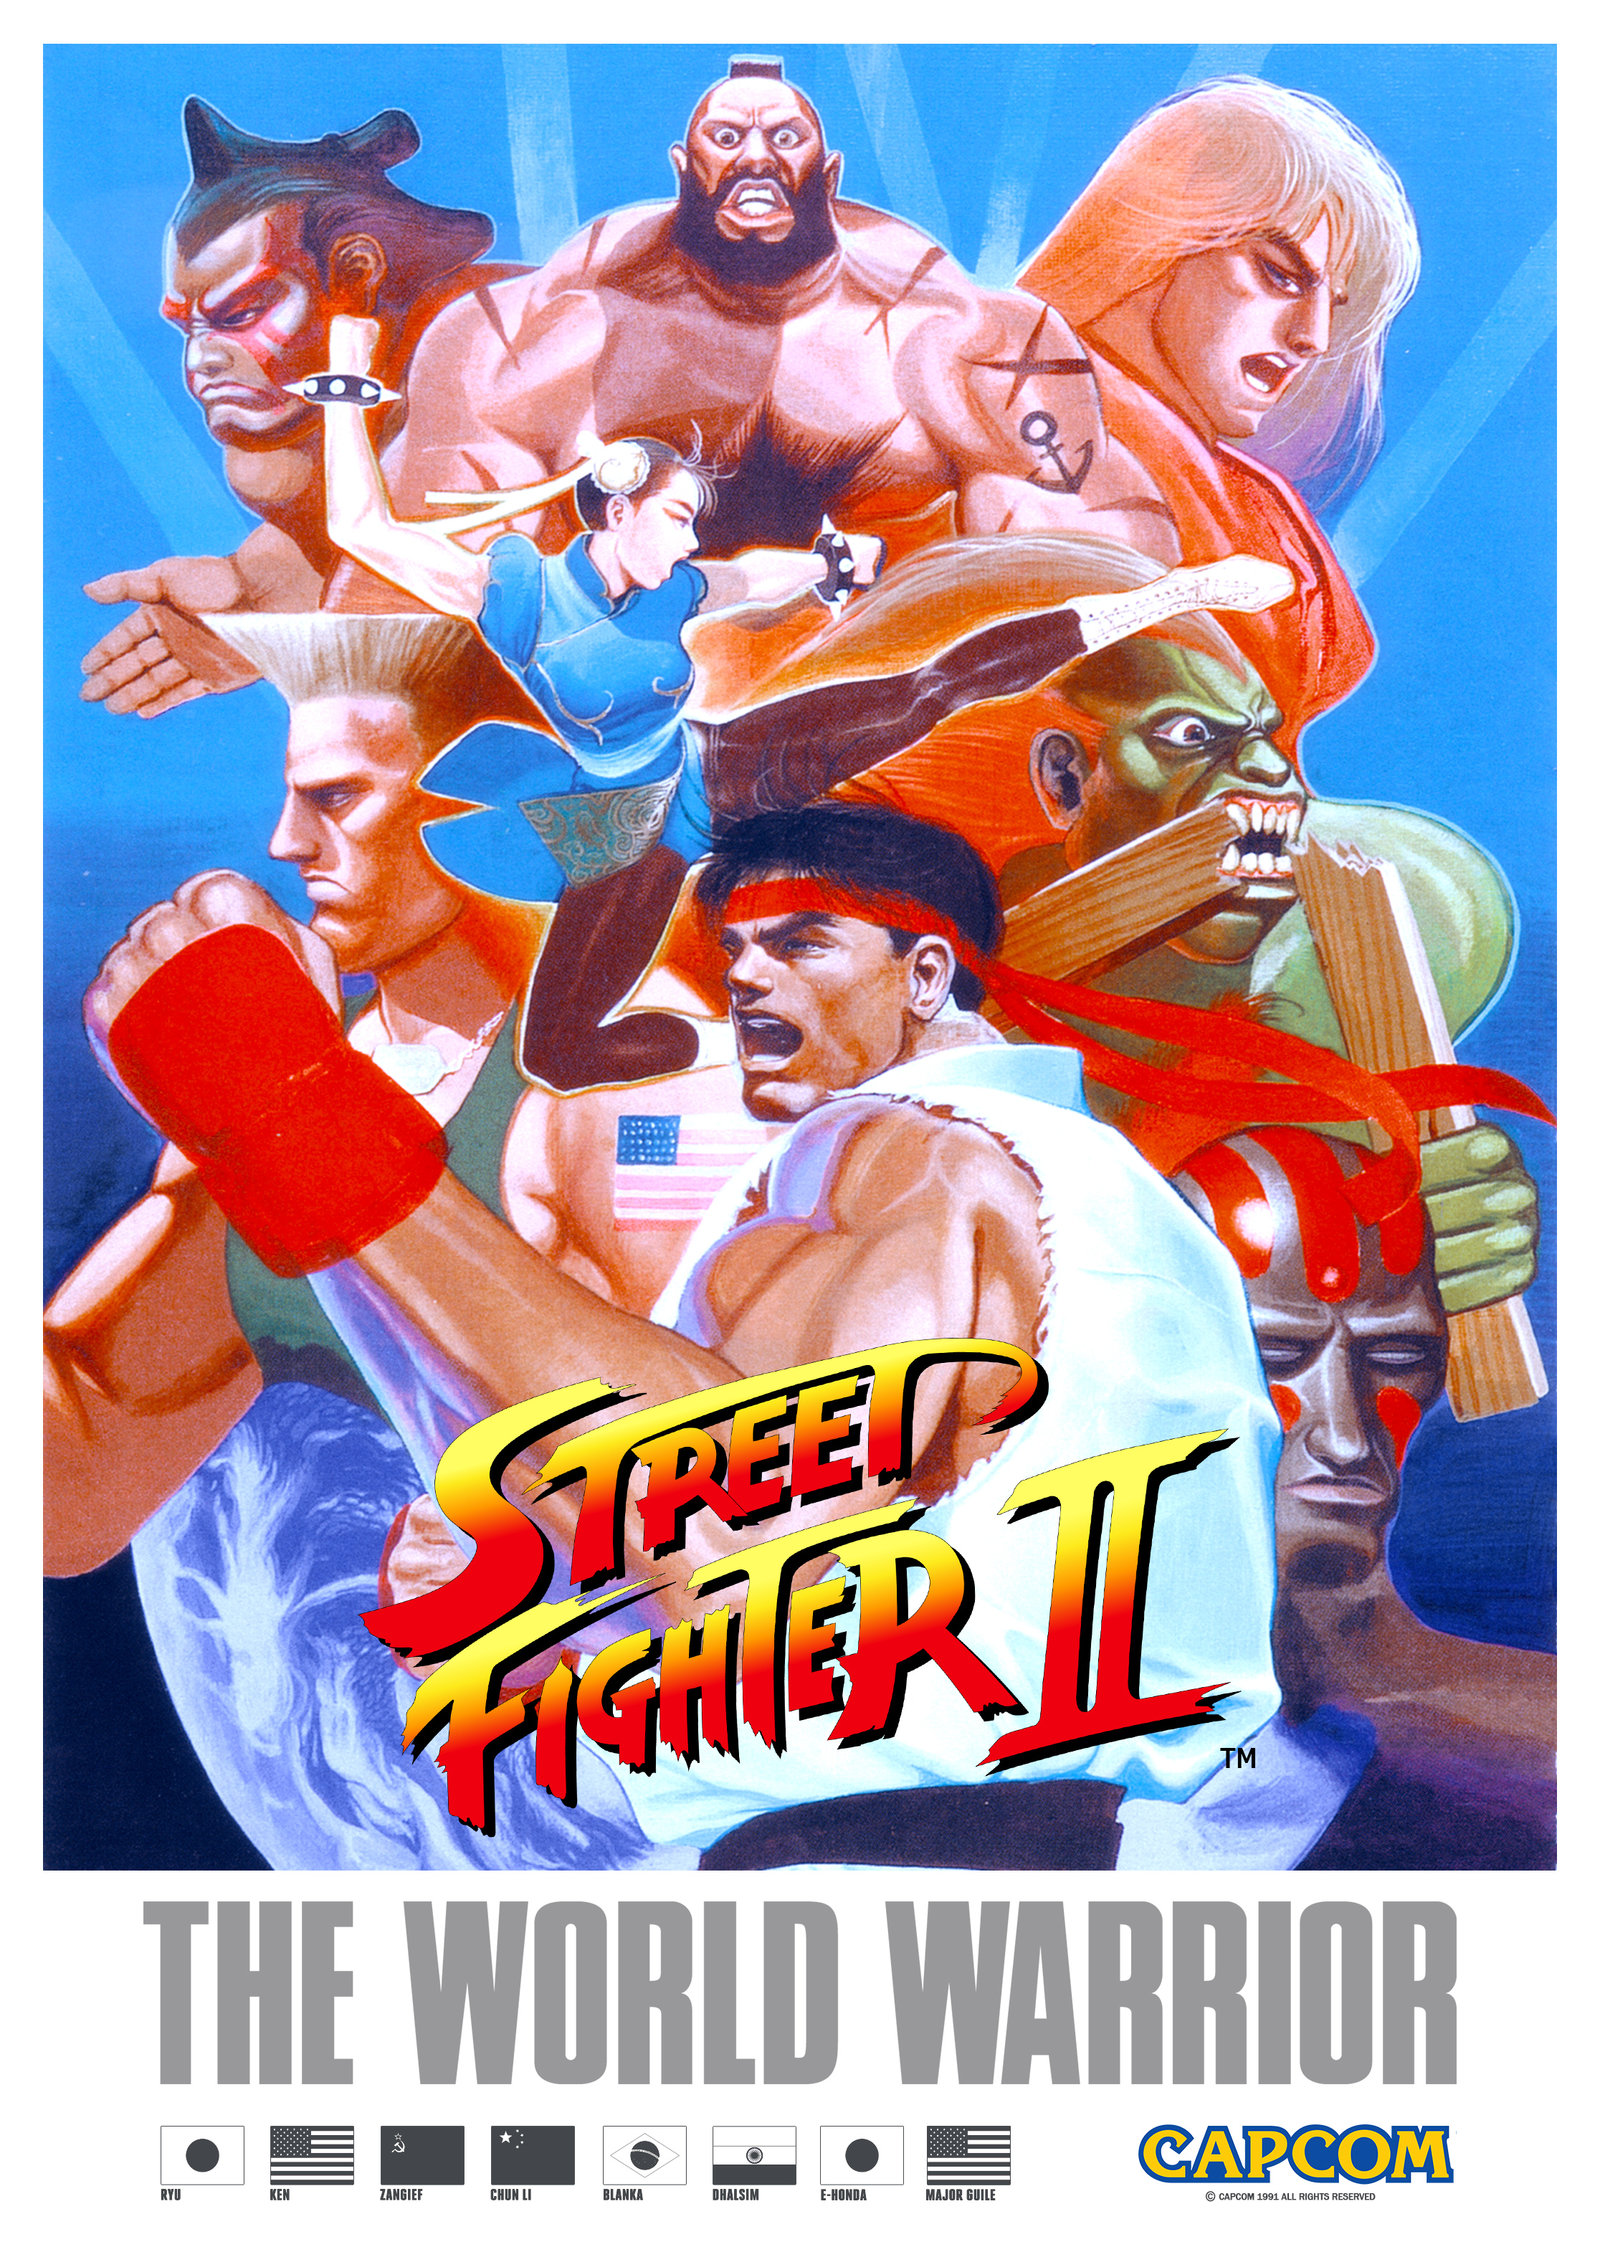 Street Fighter II: The World Warrior (Arcade) – VHS Revival